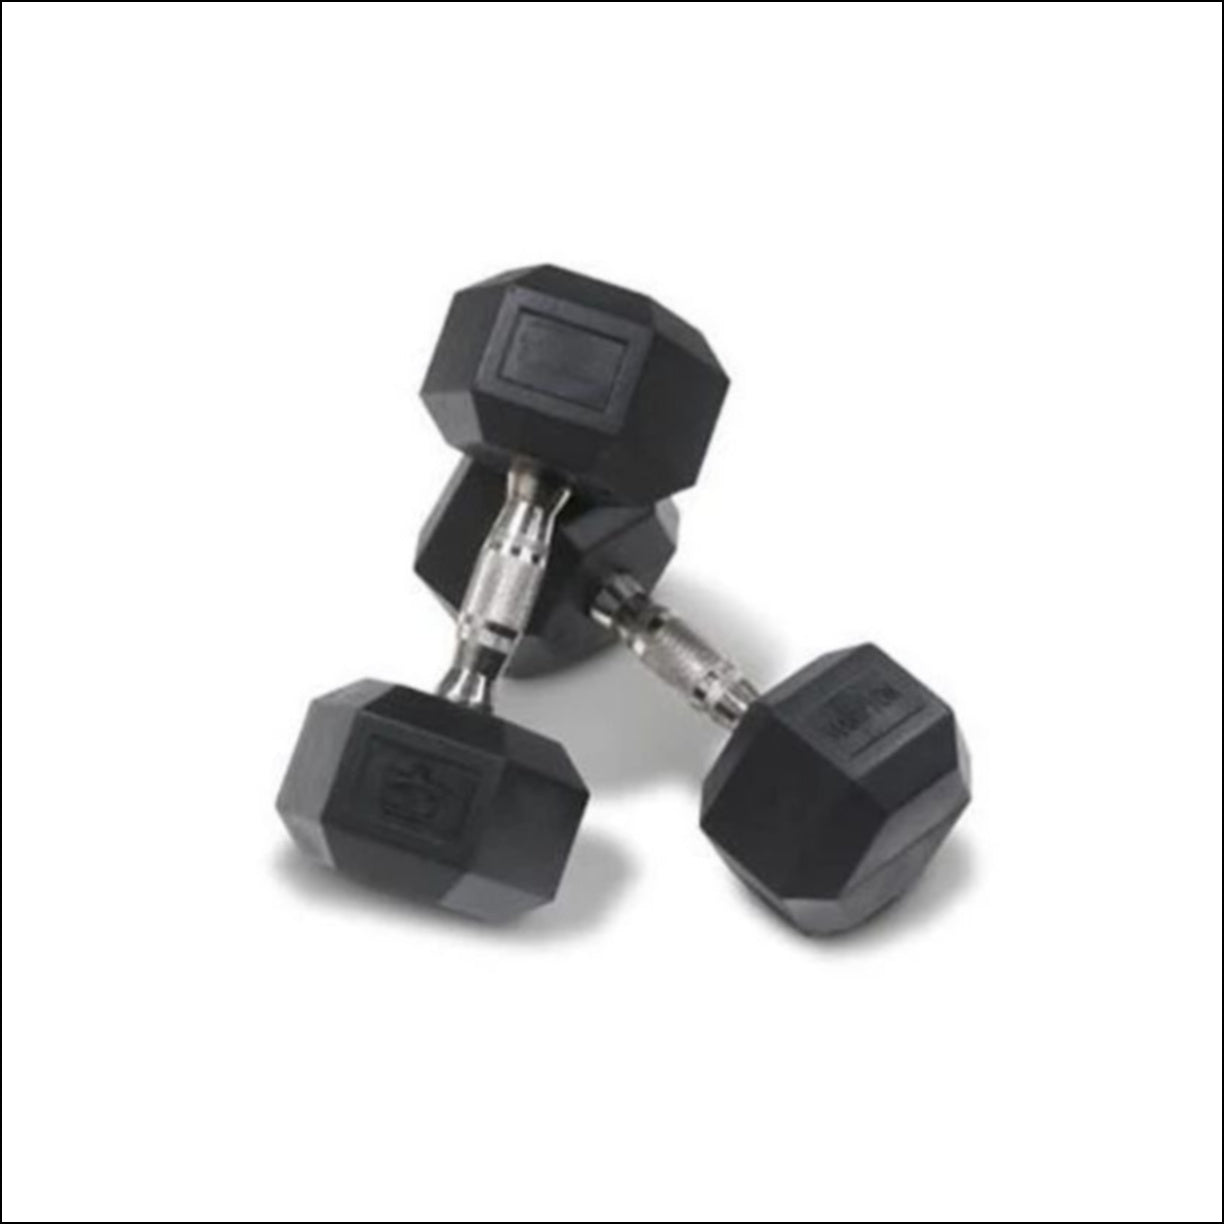 PAIR OF 7.5-KG RUBBER HEX DUMBBELLS  Muscle Motion Rubber coated hexagonal dumbbells with ergonomic handles are designed for increased comfort and improved durability. Rubber coating reduces noise improves life cycle of the product  (other finishes such as chrome and cast iron are subject to chipping and rust). Rubber coated dumbbells are also kinder on floor surfaces. The hexagonal shaped ends are designed to prevent the dumbbell from rolling on the floor or dumbbell rack.